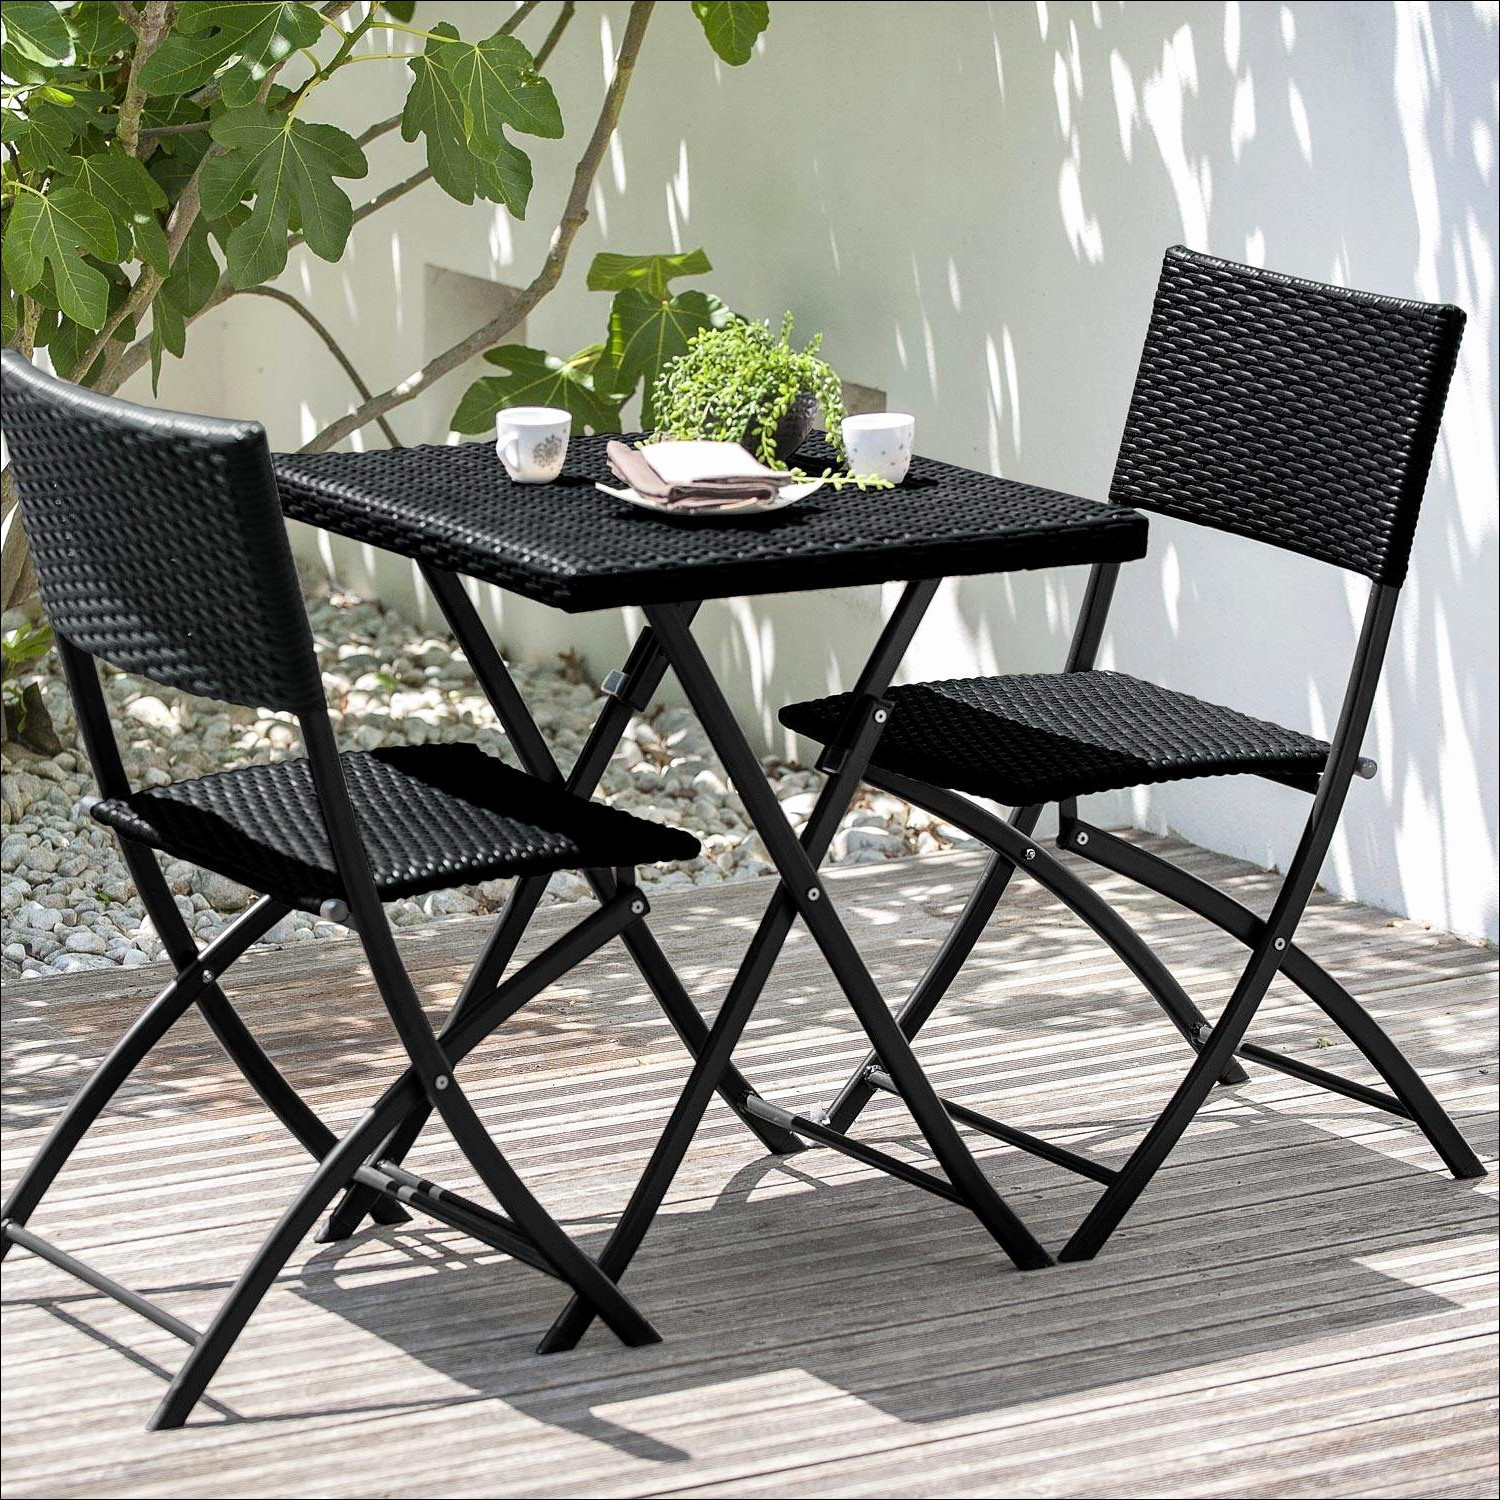 table de jardin promo eminza soldes genial 41 conception salon de jardin en promo of table de jardin promo 1